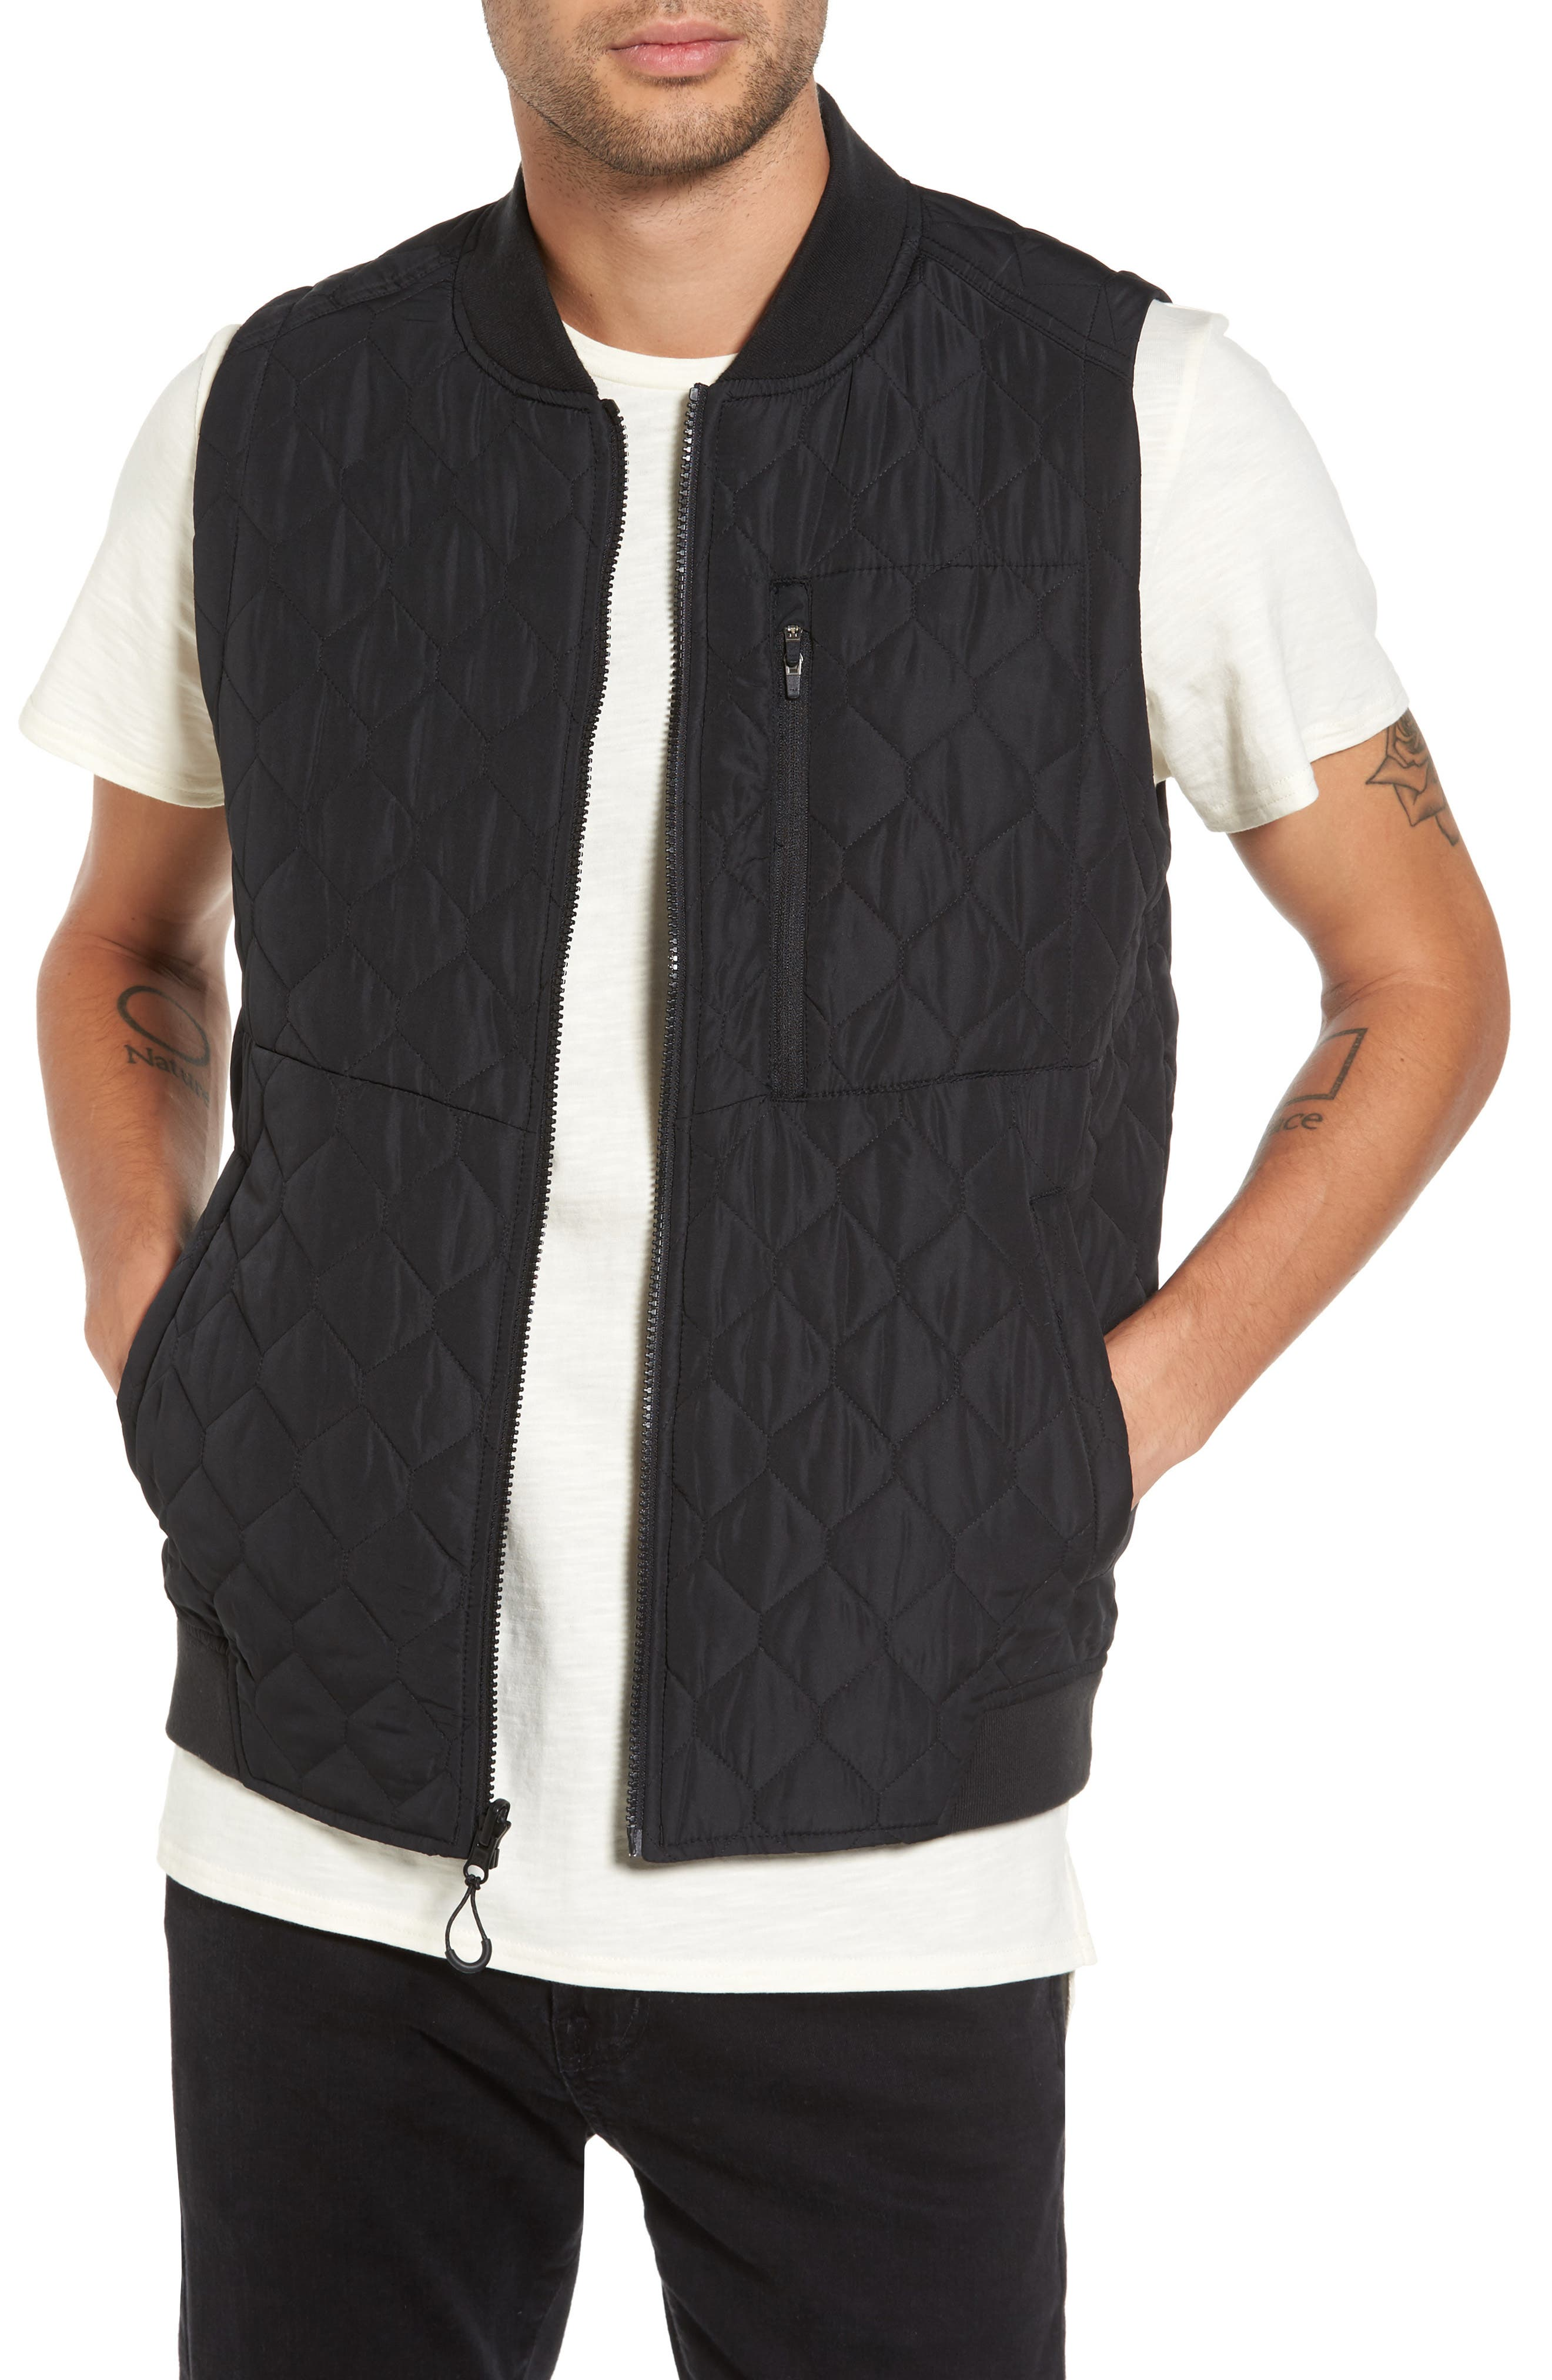 Replicant Quilted Vest,                         Main,                         color, Black